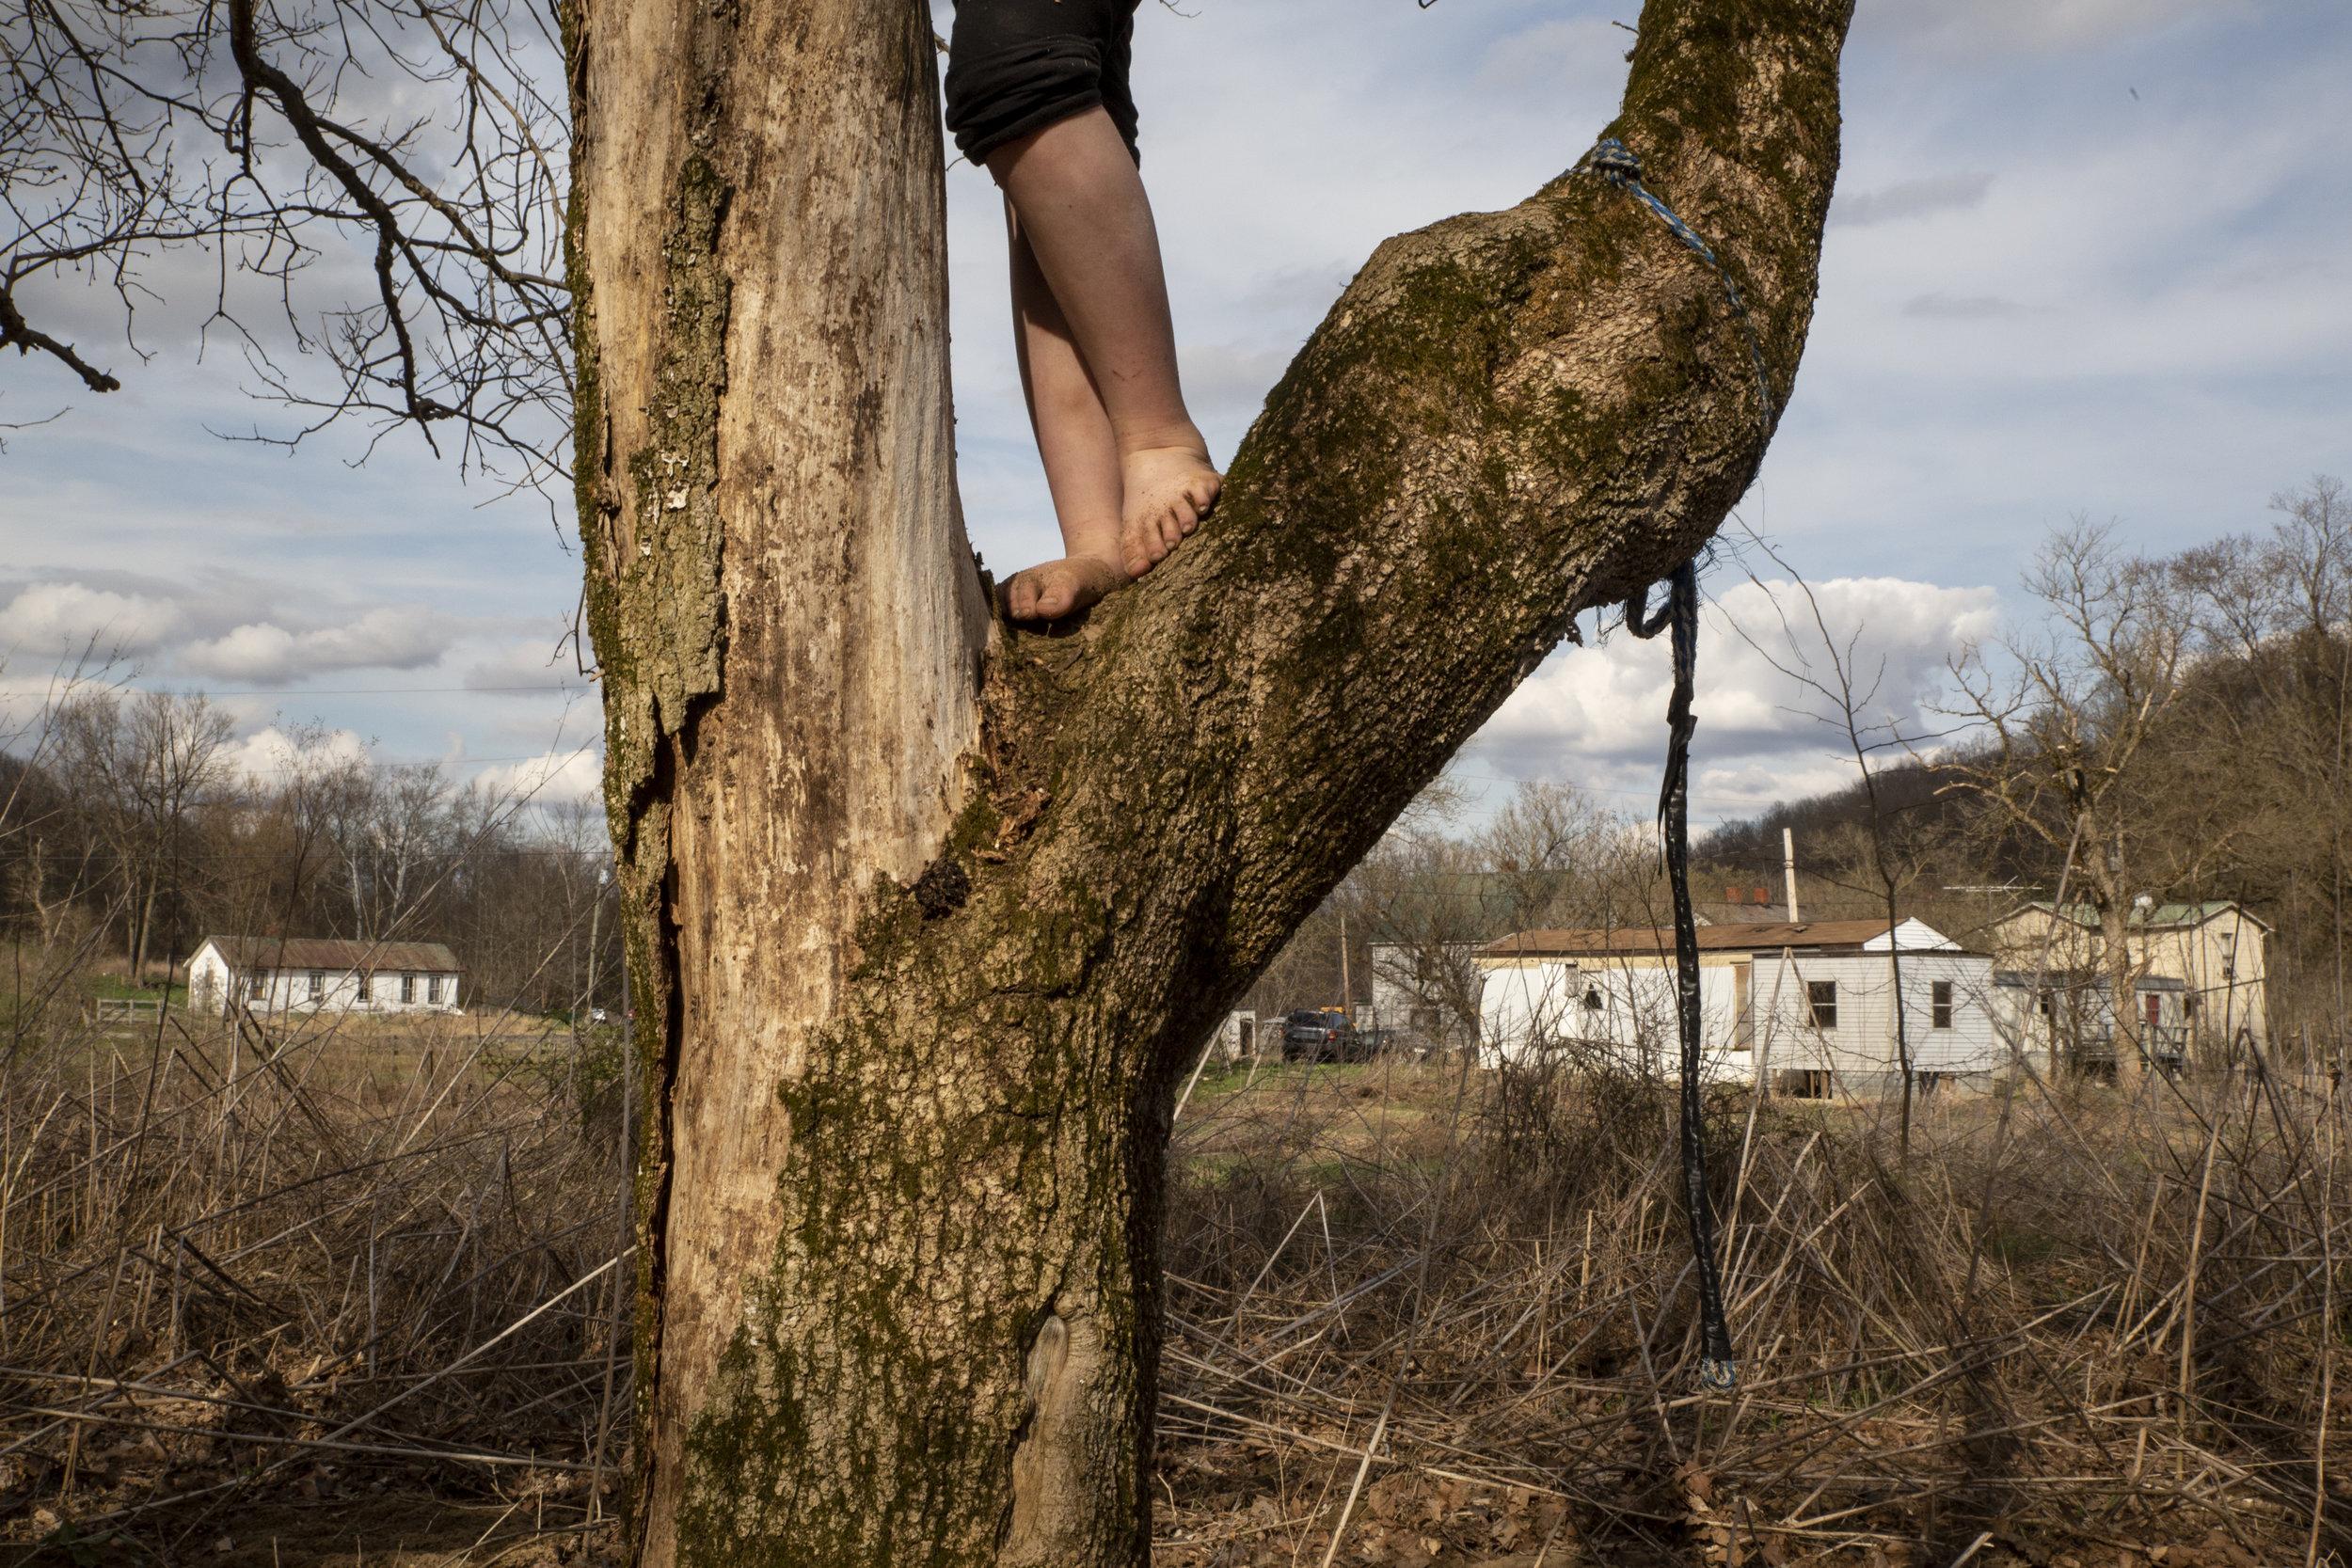 """Brooklyn Roof, 6, climbs a tree near her home — a rented trailer in Sharpsburg, Ohio. The Roof family has resided in Sharpsburg for nine years, but worry about their future because the community lies in a flood zone near Sharps Fork Federal Creek. """"I don't want my house to wash away,"""" says Audra Roof."""